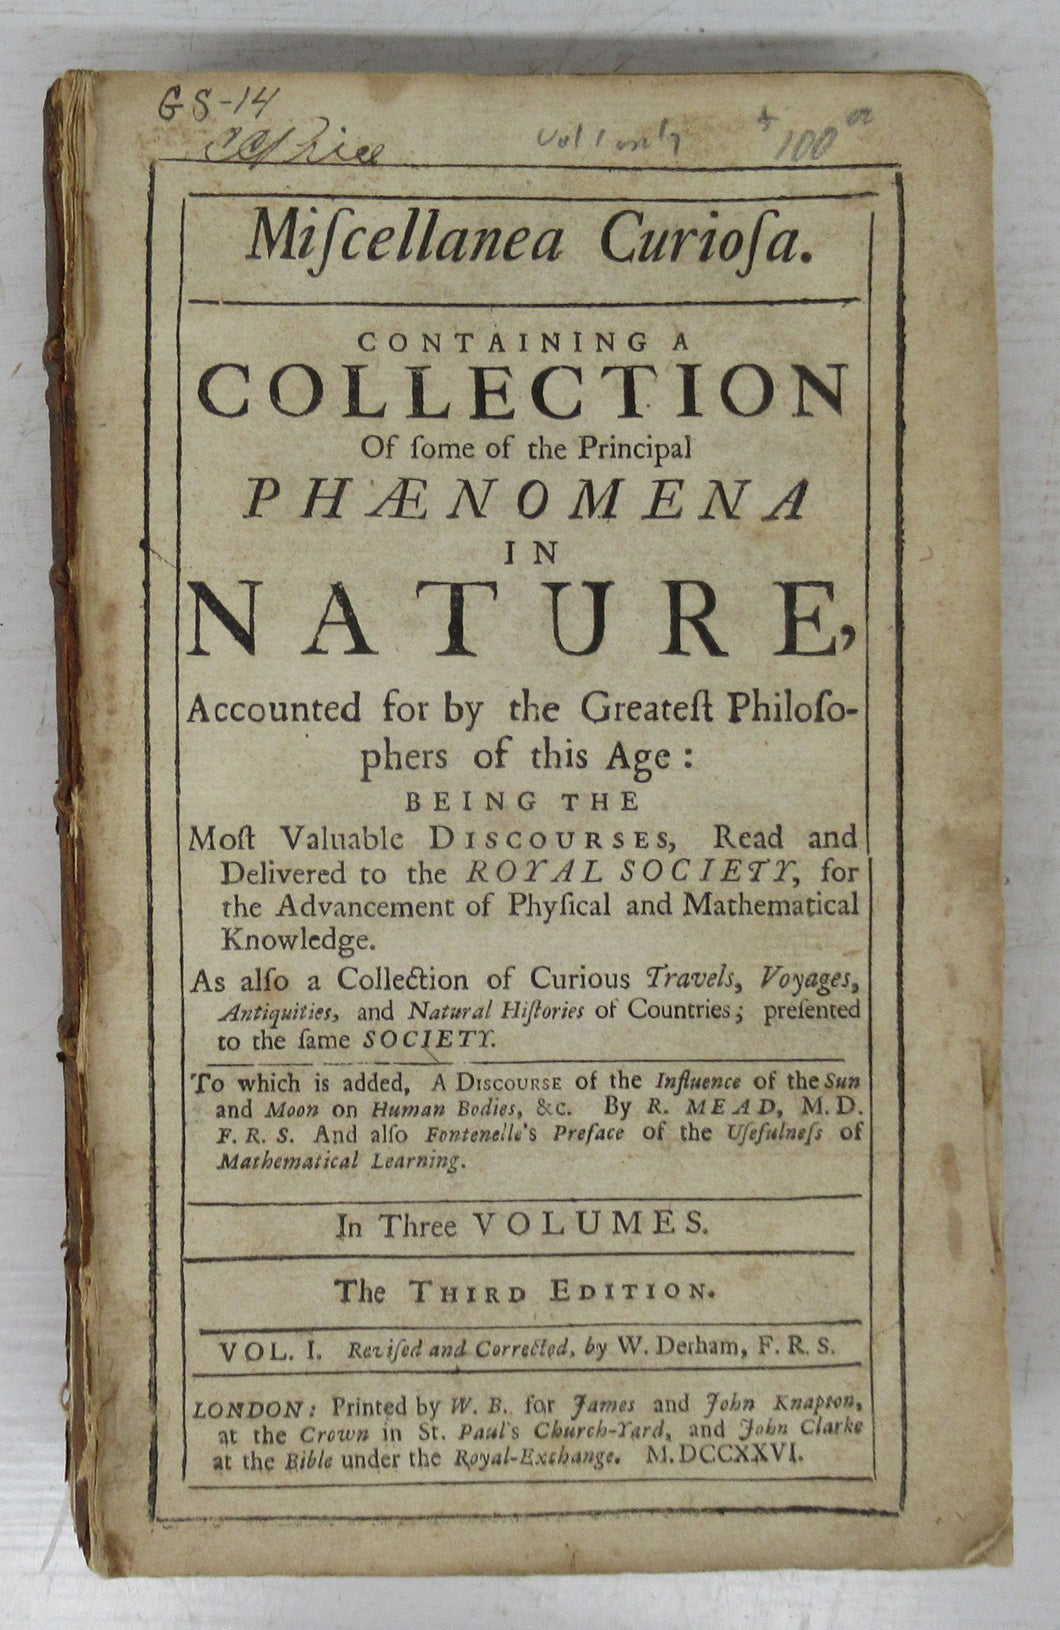 Miscellanea Curiosa. Containing A Collection Of some of the Principal Phaenomena in Nature. Vol. I only